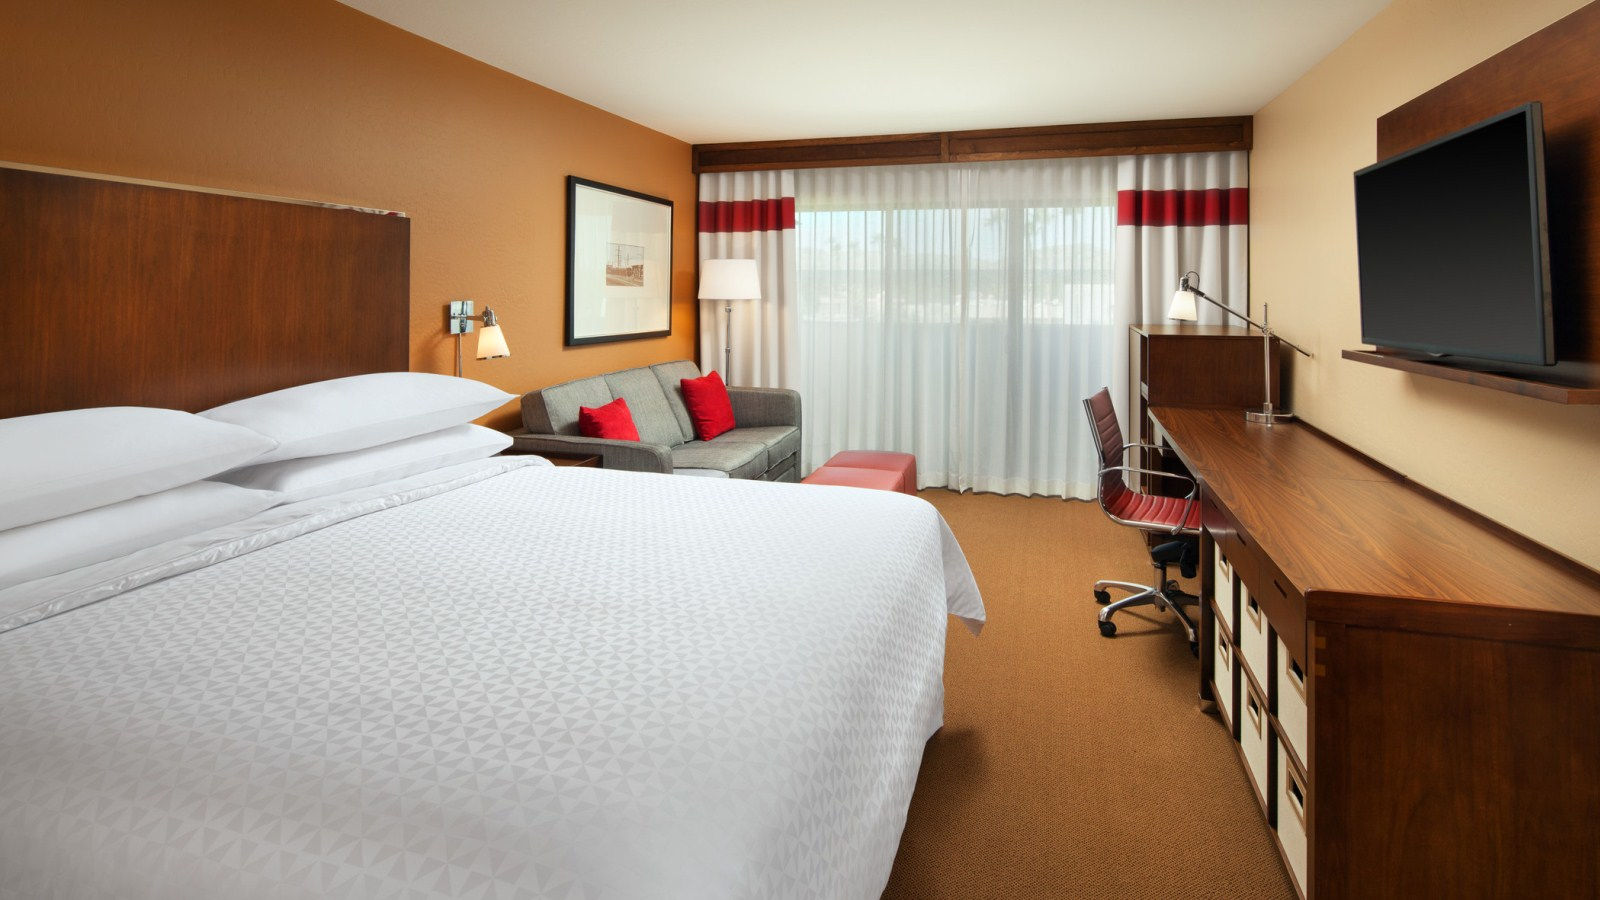 Phoenix Accommodations - Accessible Room